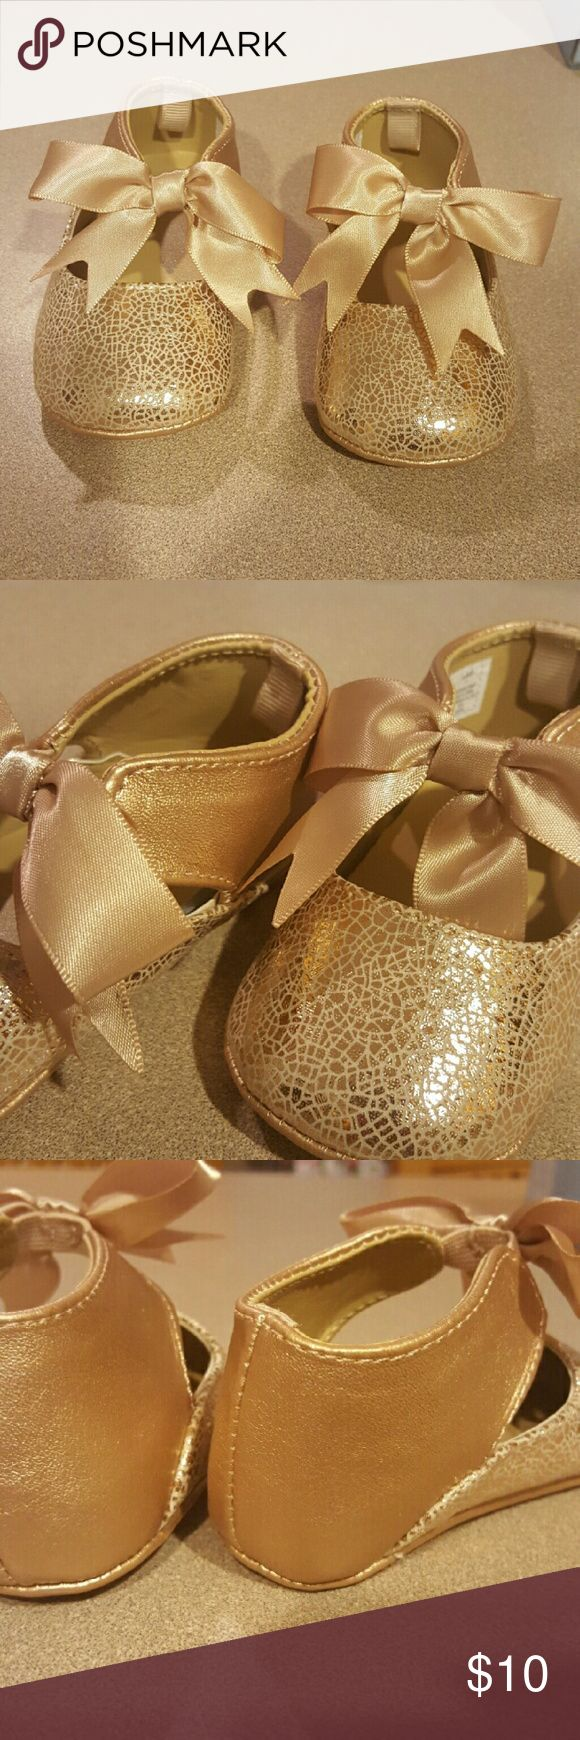 Baby Crib Dress Shoes Size 3 crib shoes. Champagne color. EUC. Smoke free home. Shoes Baby & Walker